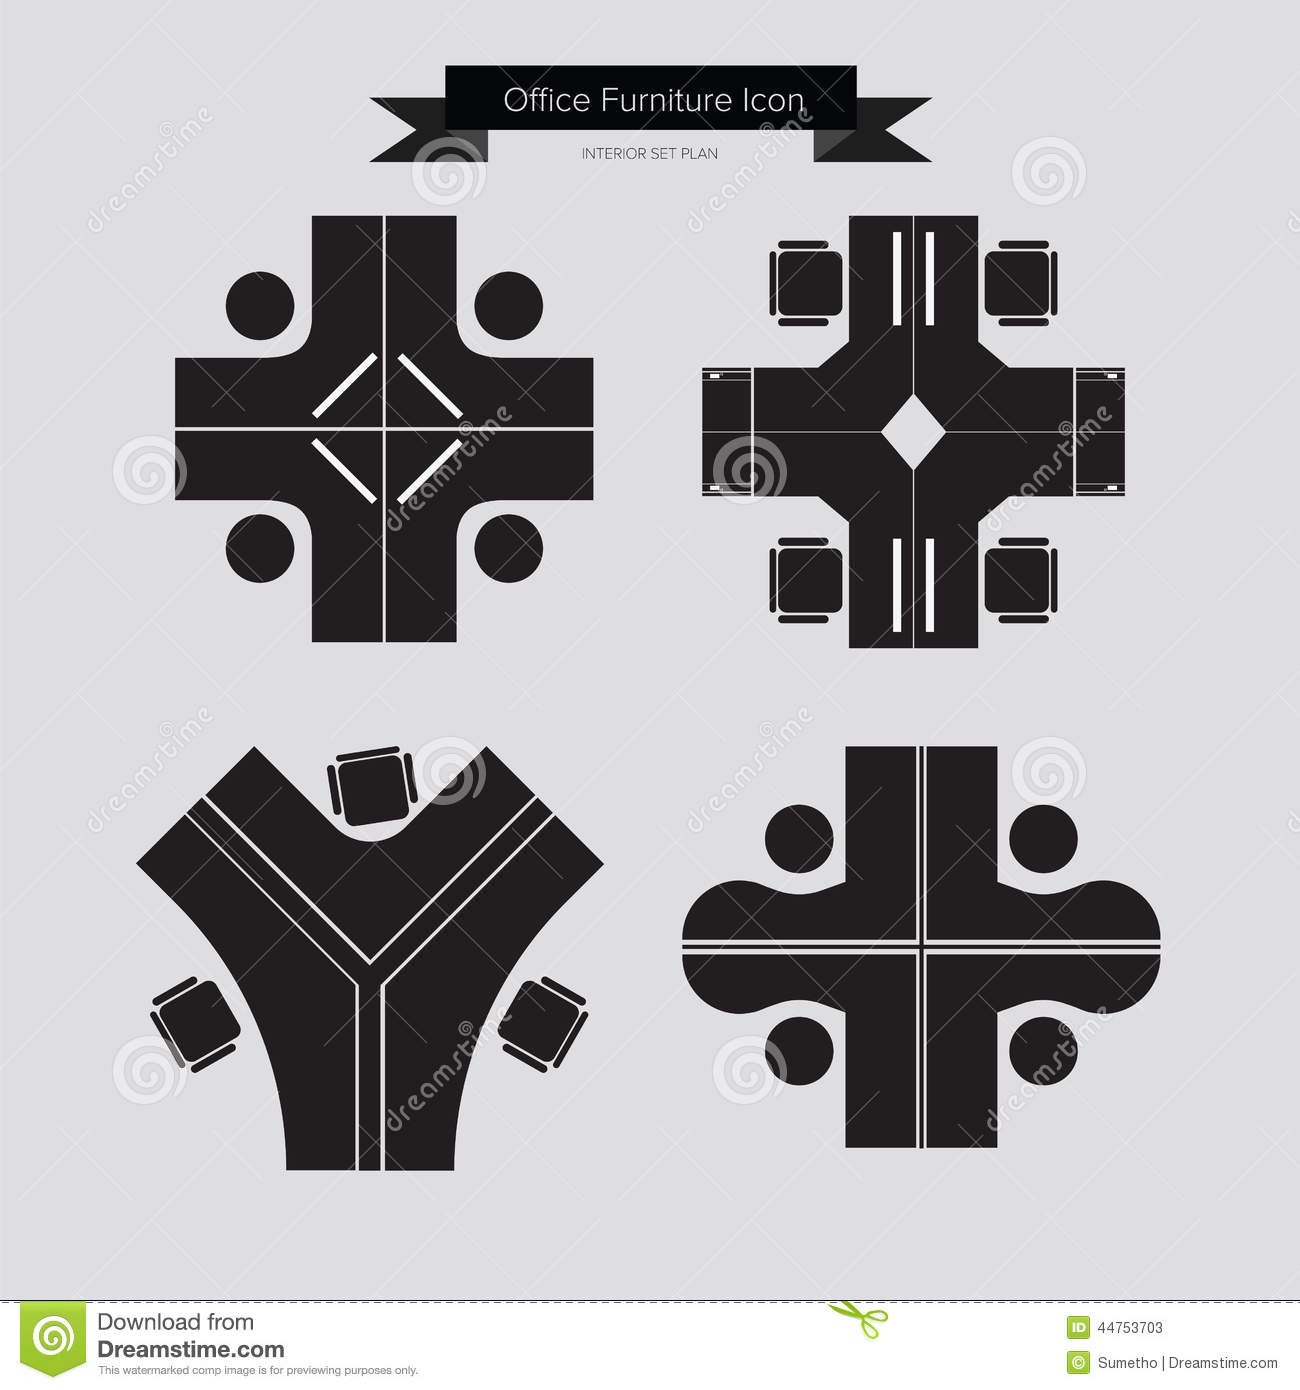 Office furniture top view - Royalty Free Vector Download Office Furniture